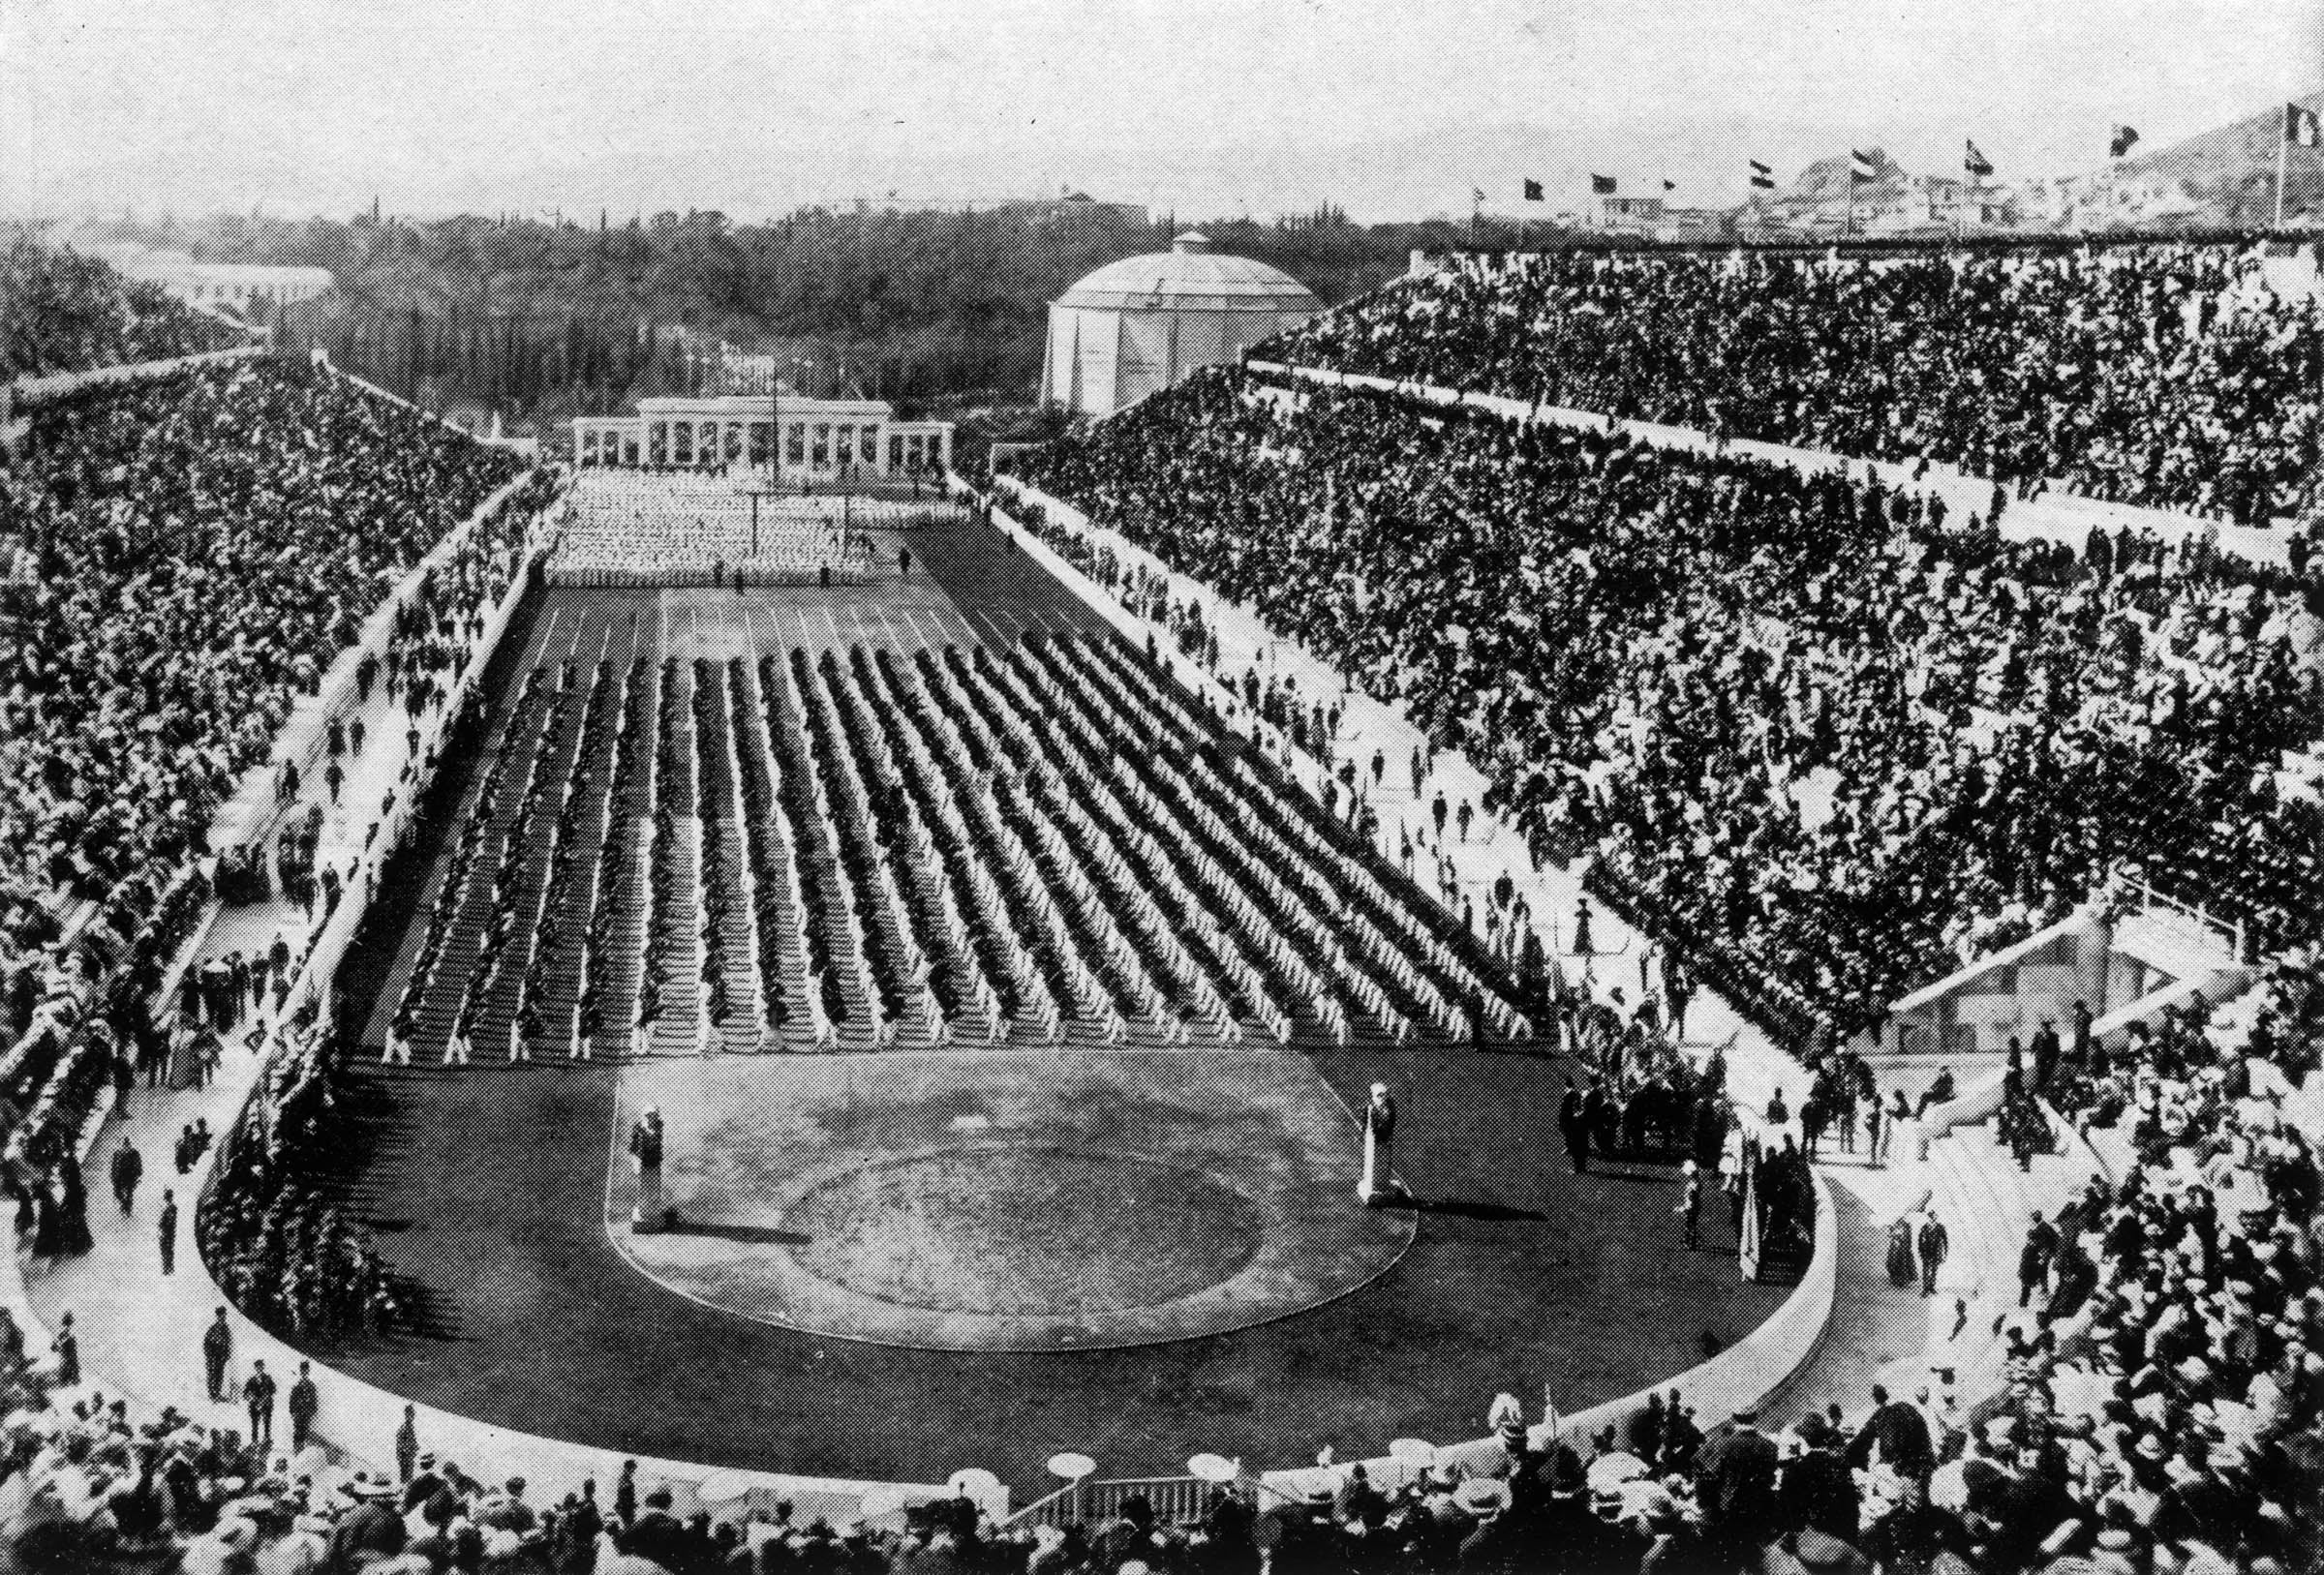 1896 Olympics in Athens